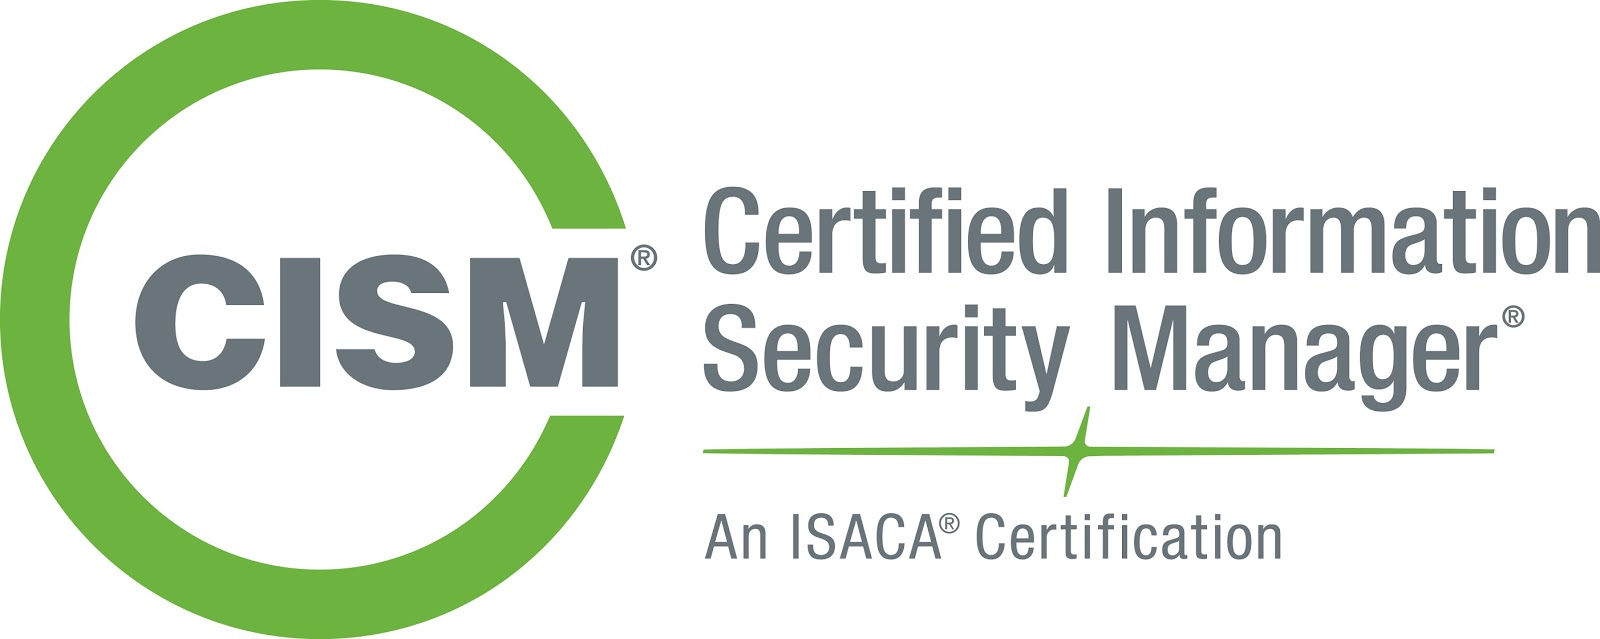 CISM – Certified Information Security Manager